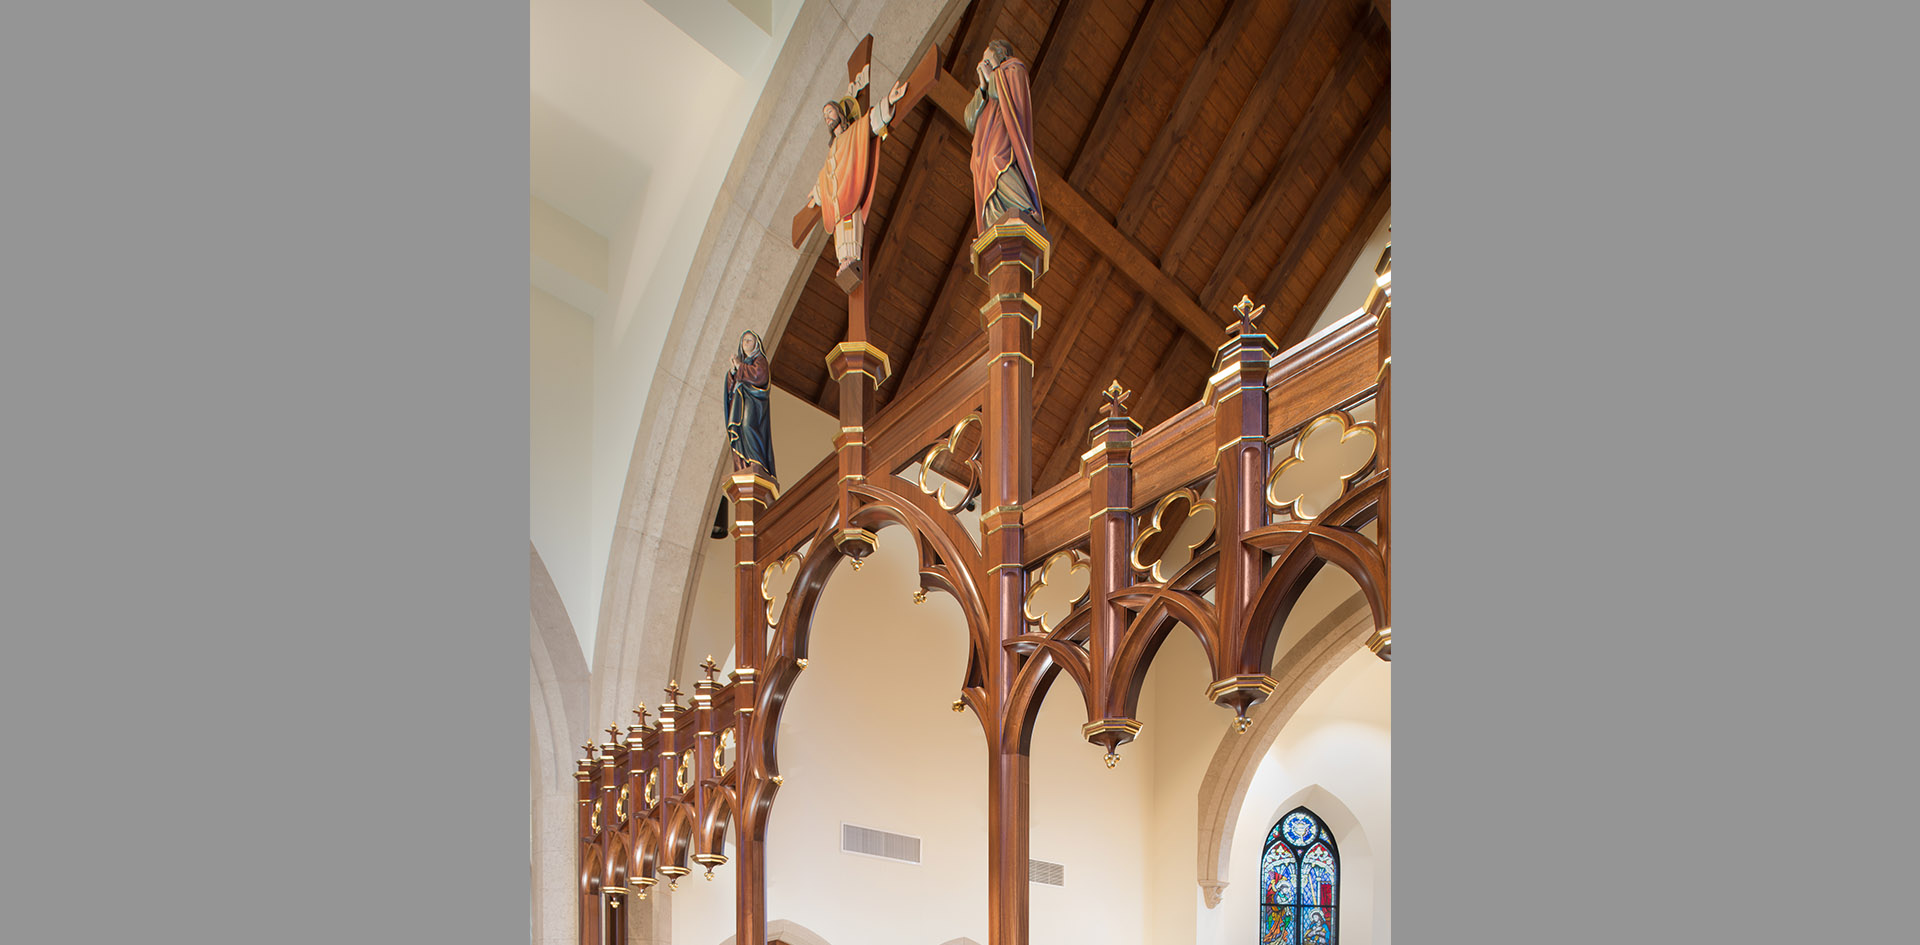 Our Lady of Walsingham Catholic Church Rood Screen 3g